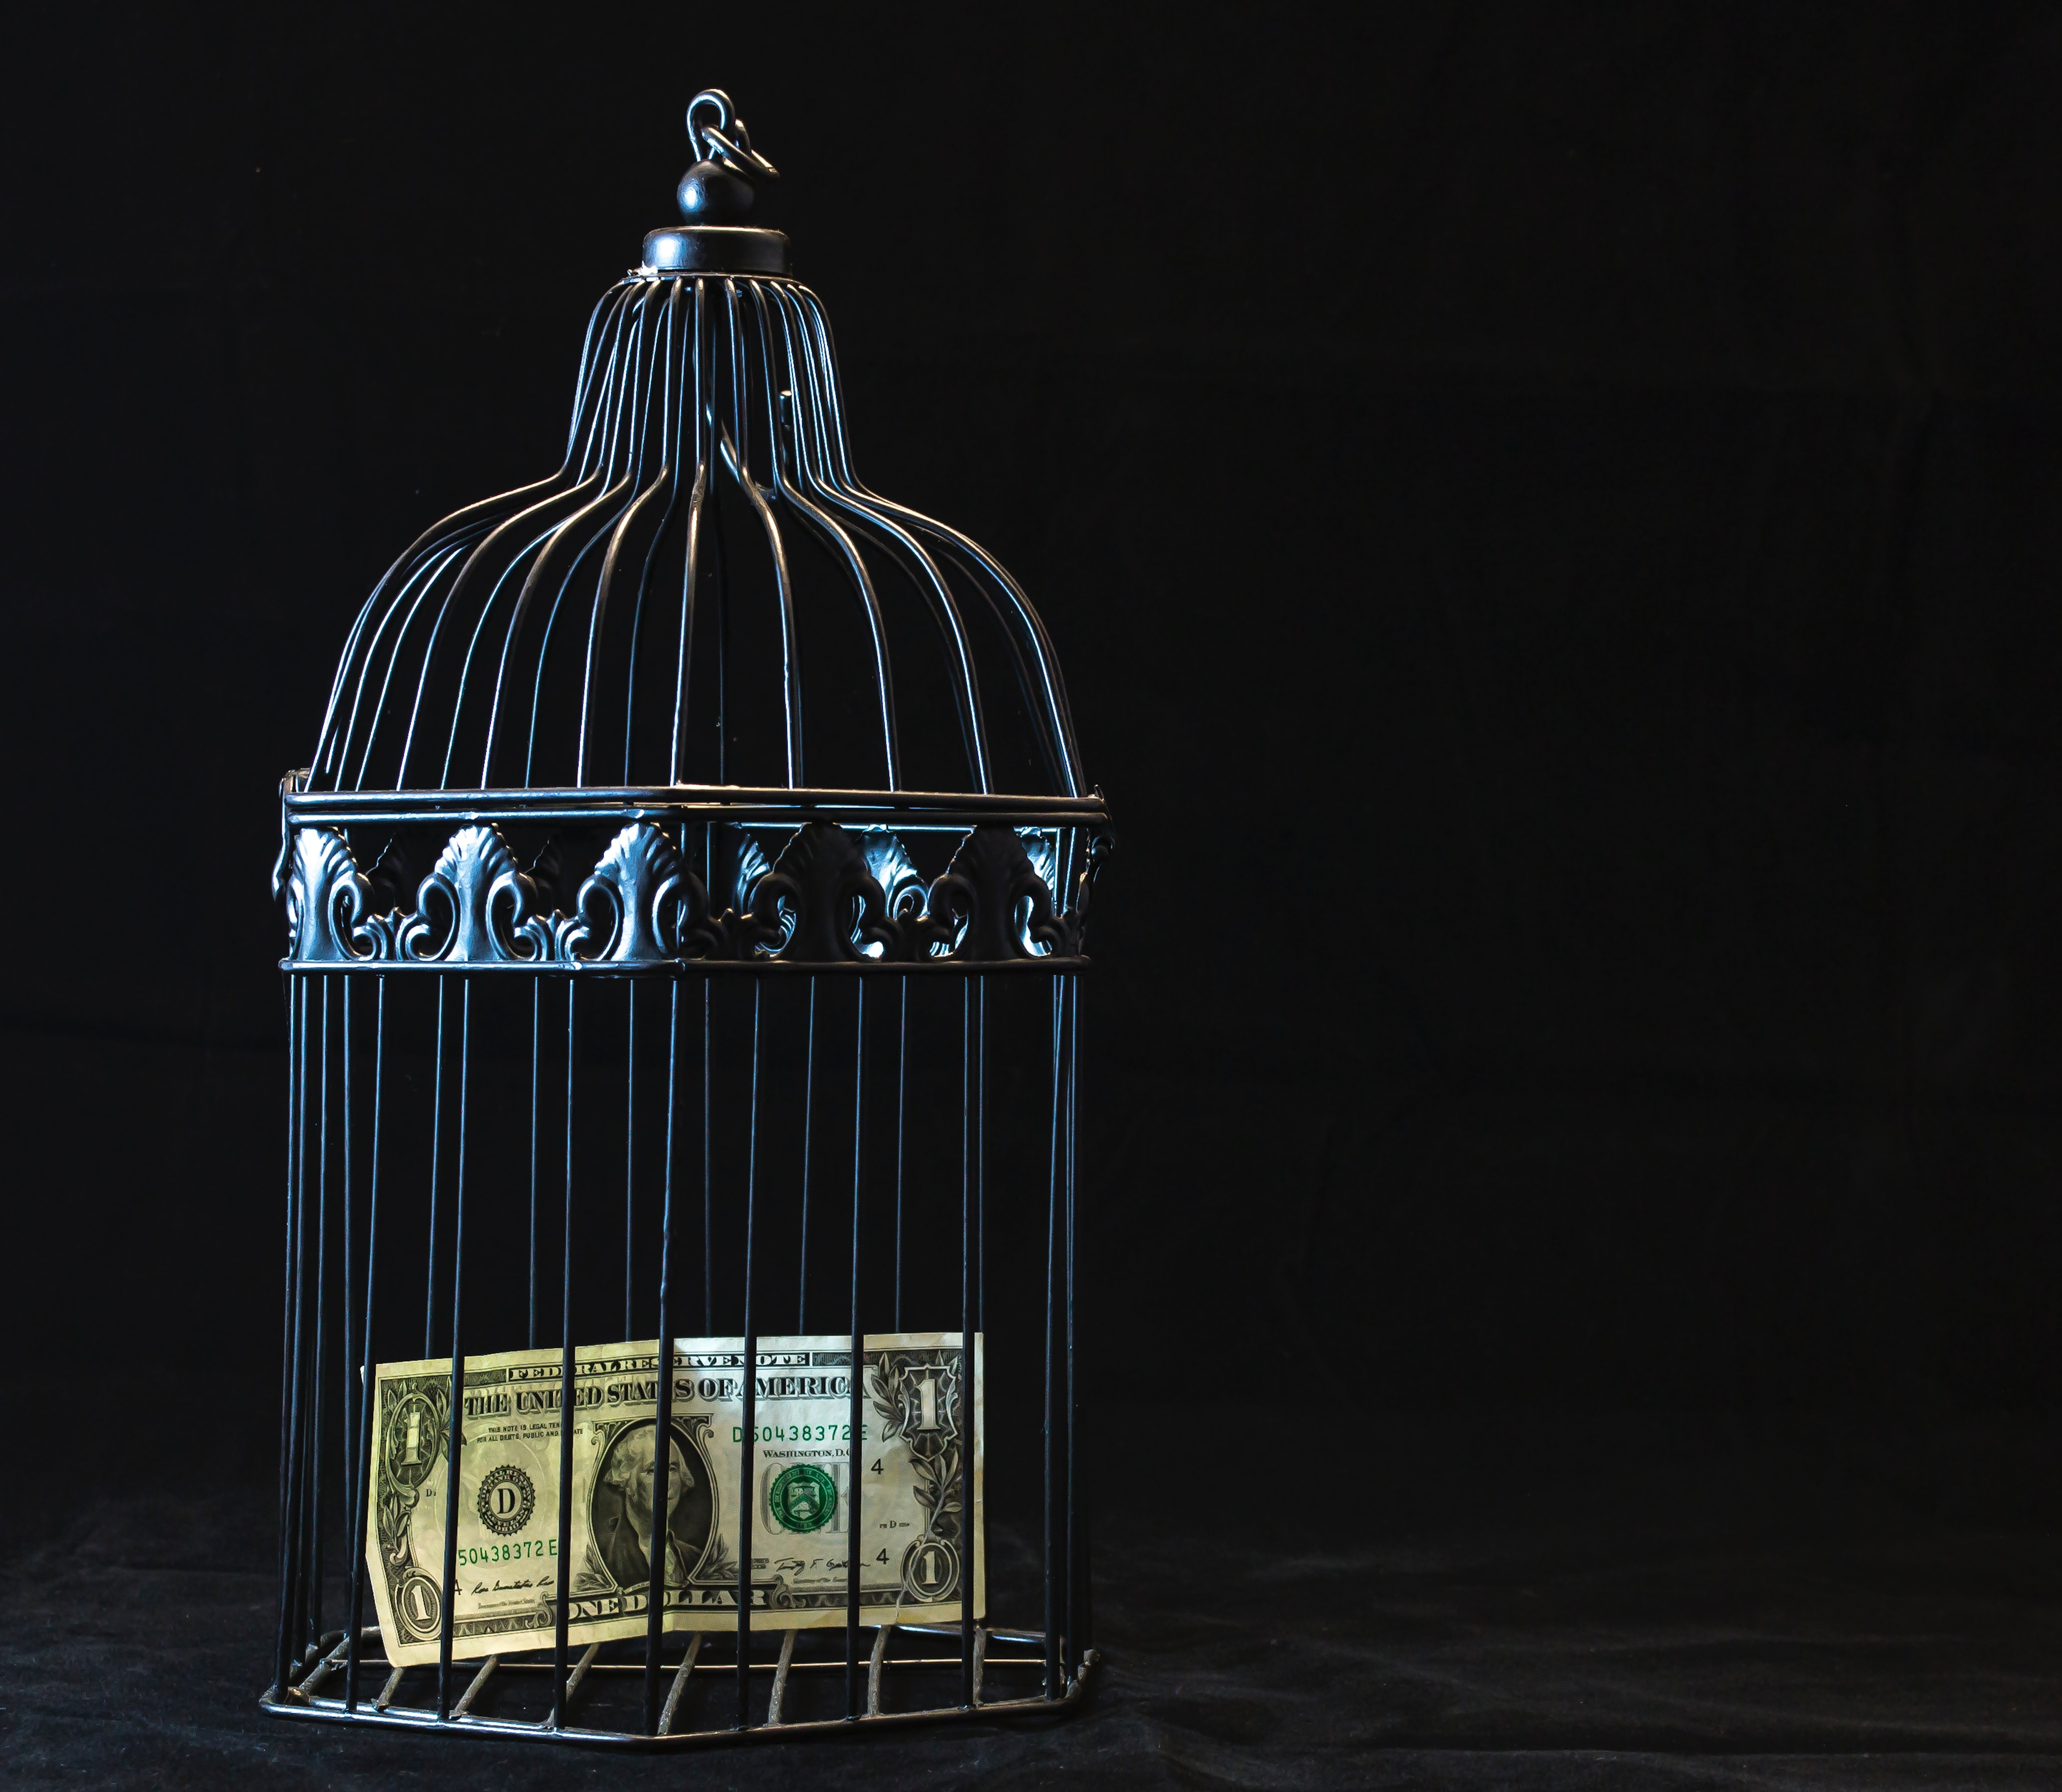 Black Steel Pet Cage With One Dollar, Banknote, Bill, Cage, Container, HQ Photo